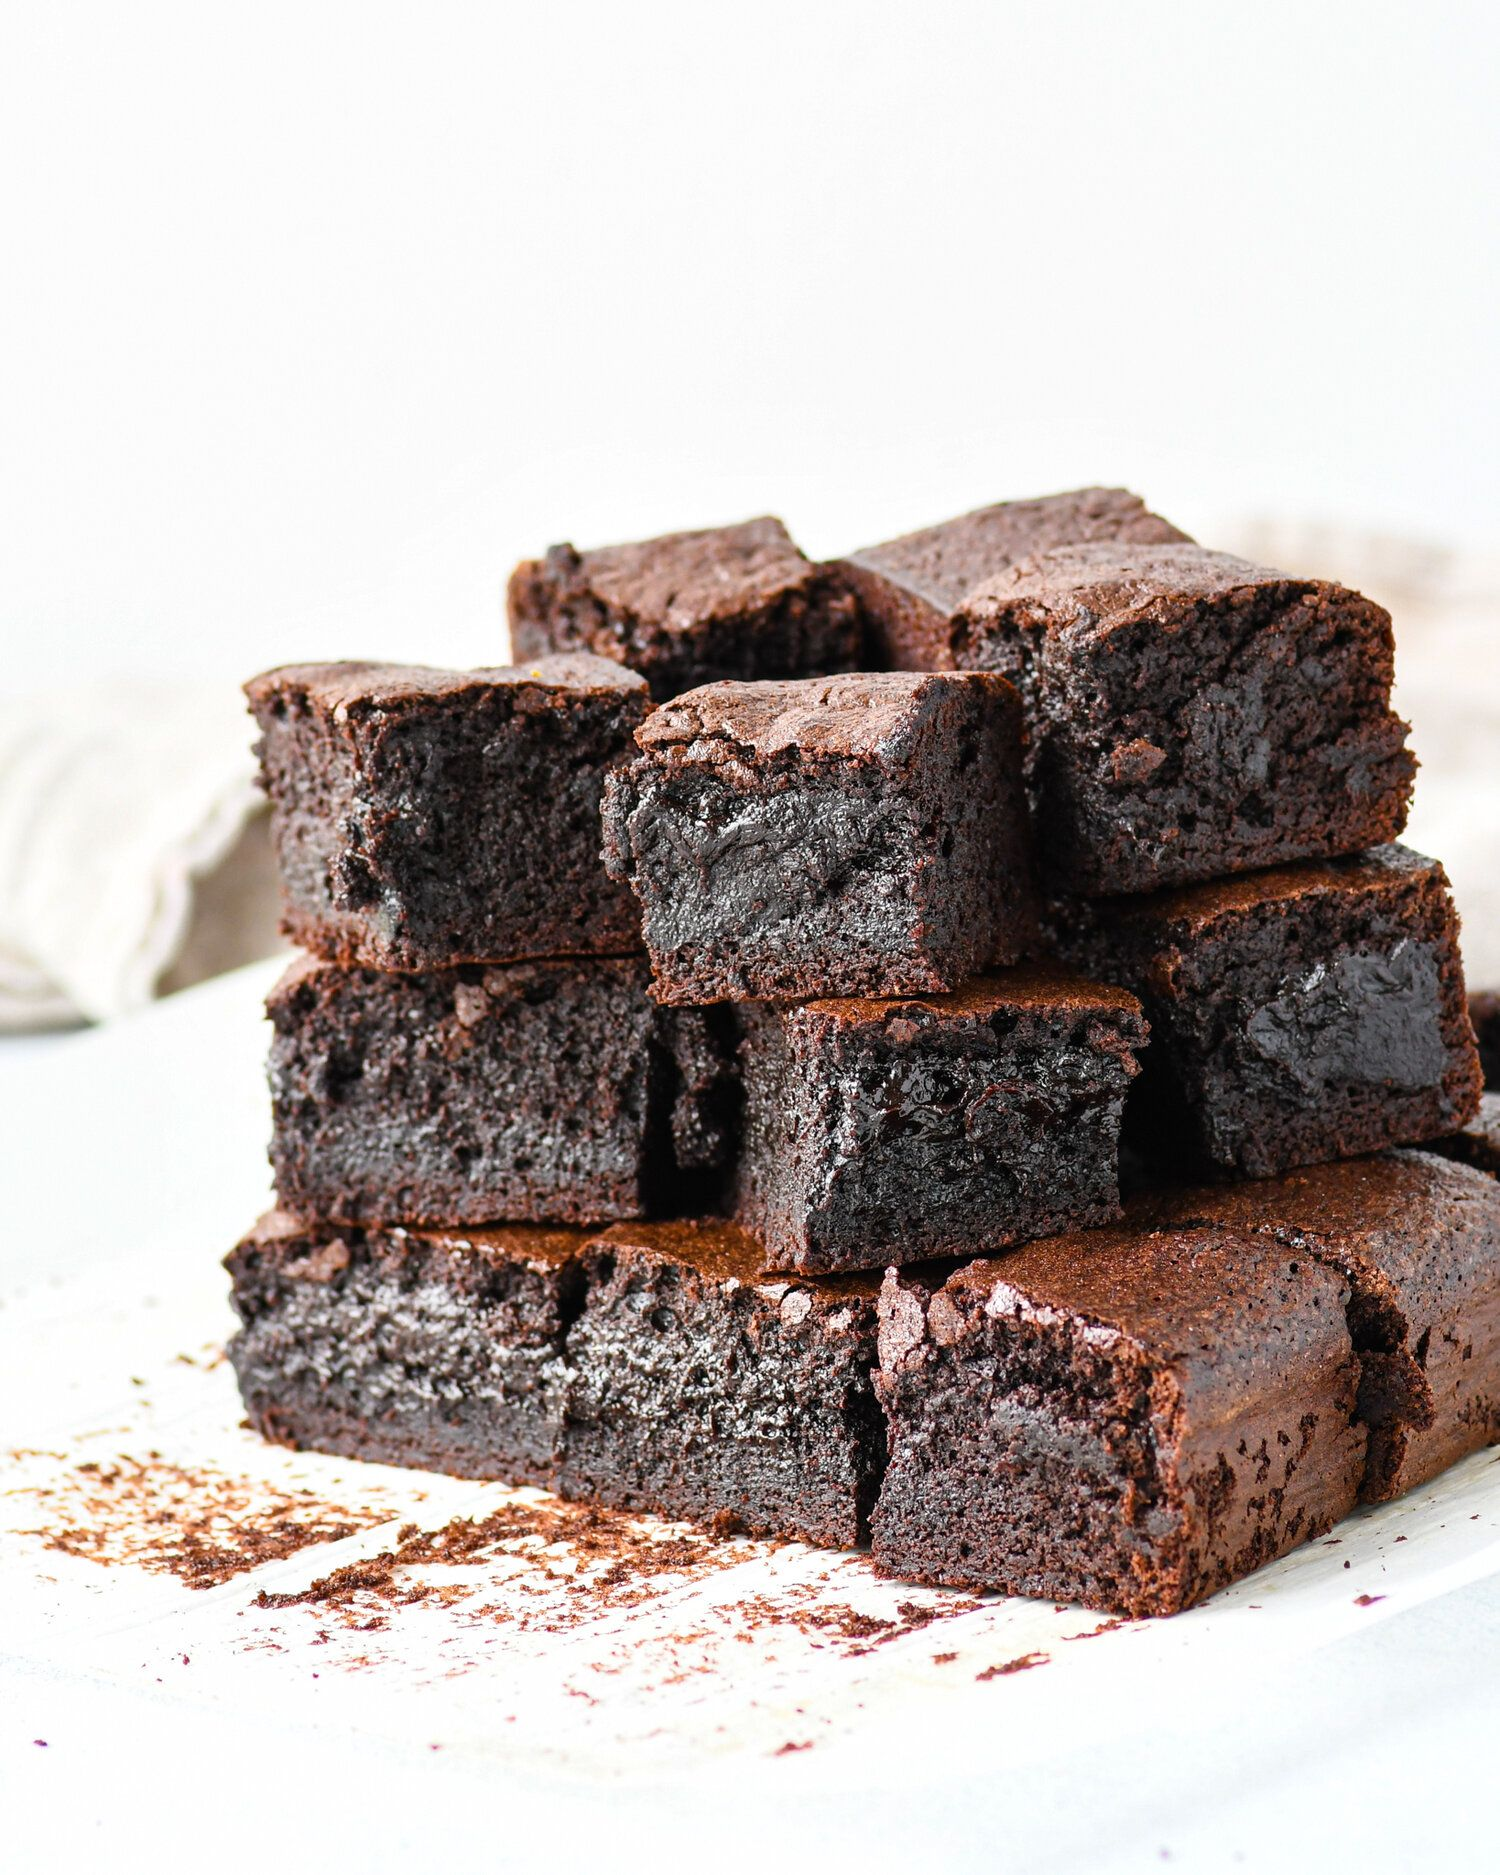 Thick Cocoa Brownies Recipe In 2020 Cocoa Brownies Chocolate Brownie Recipe Brownie Recipes